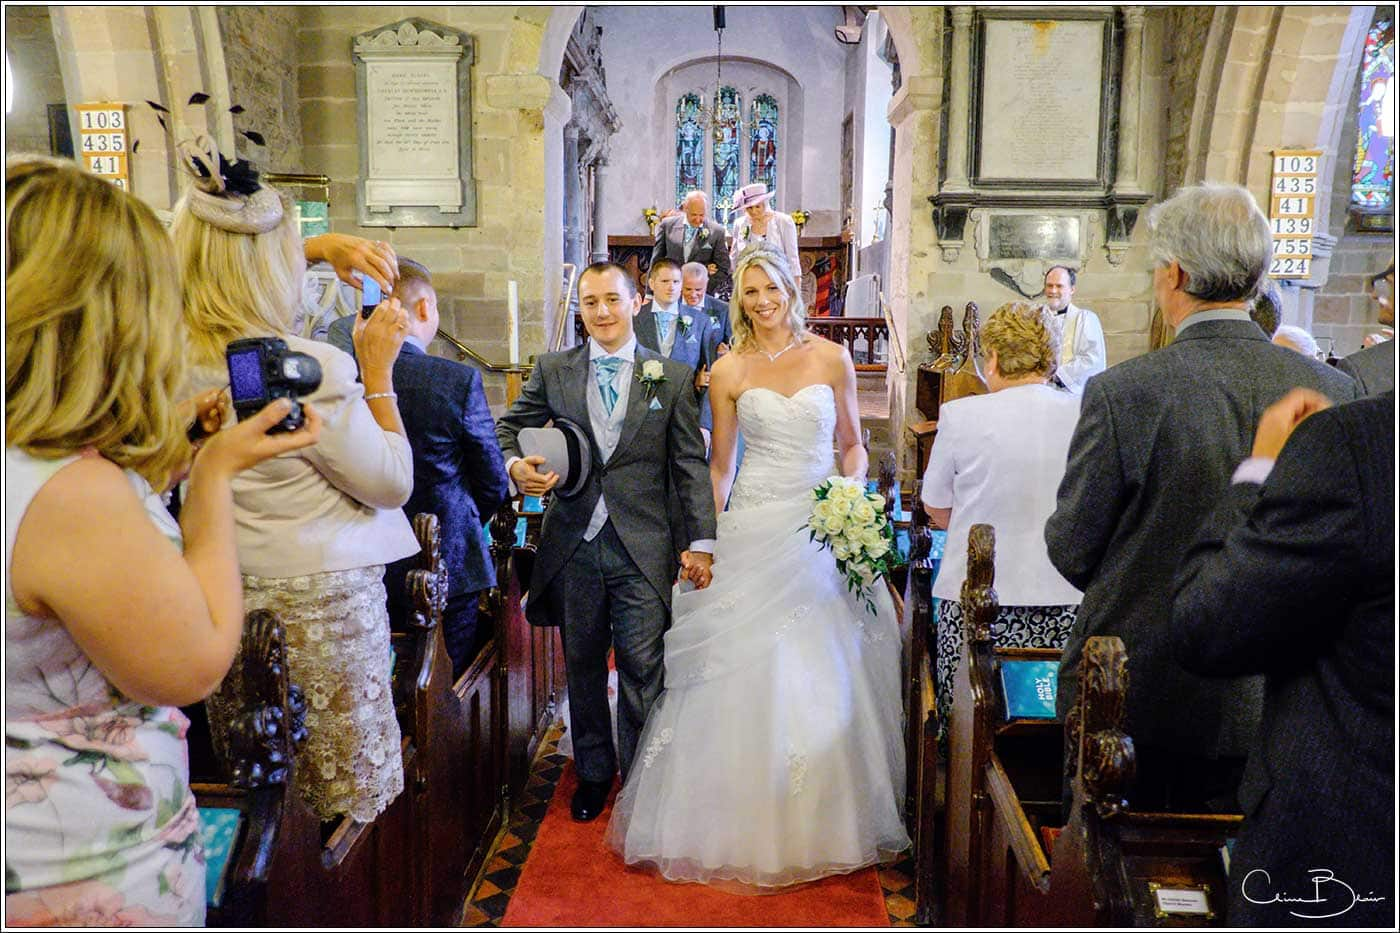 Bride and groom walking down the aisle-by Hampton manor wedding photographer Clive Blair Photography